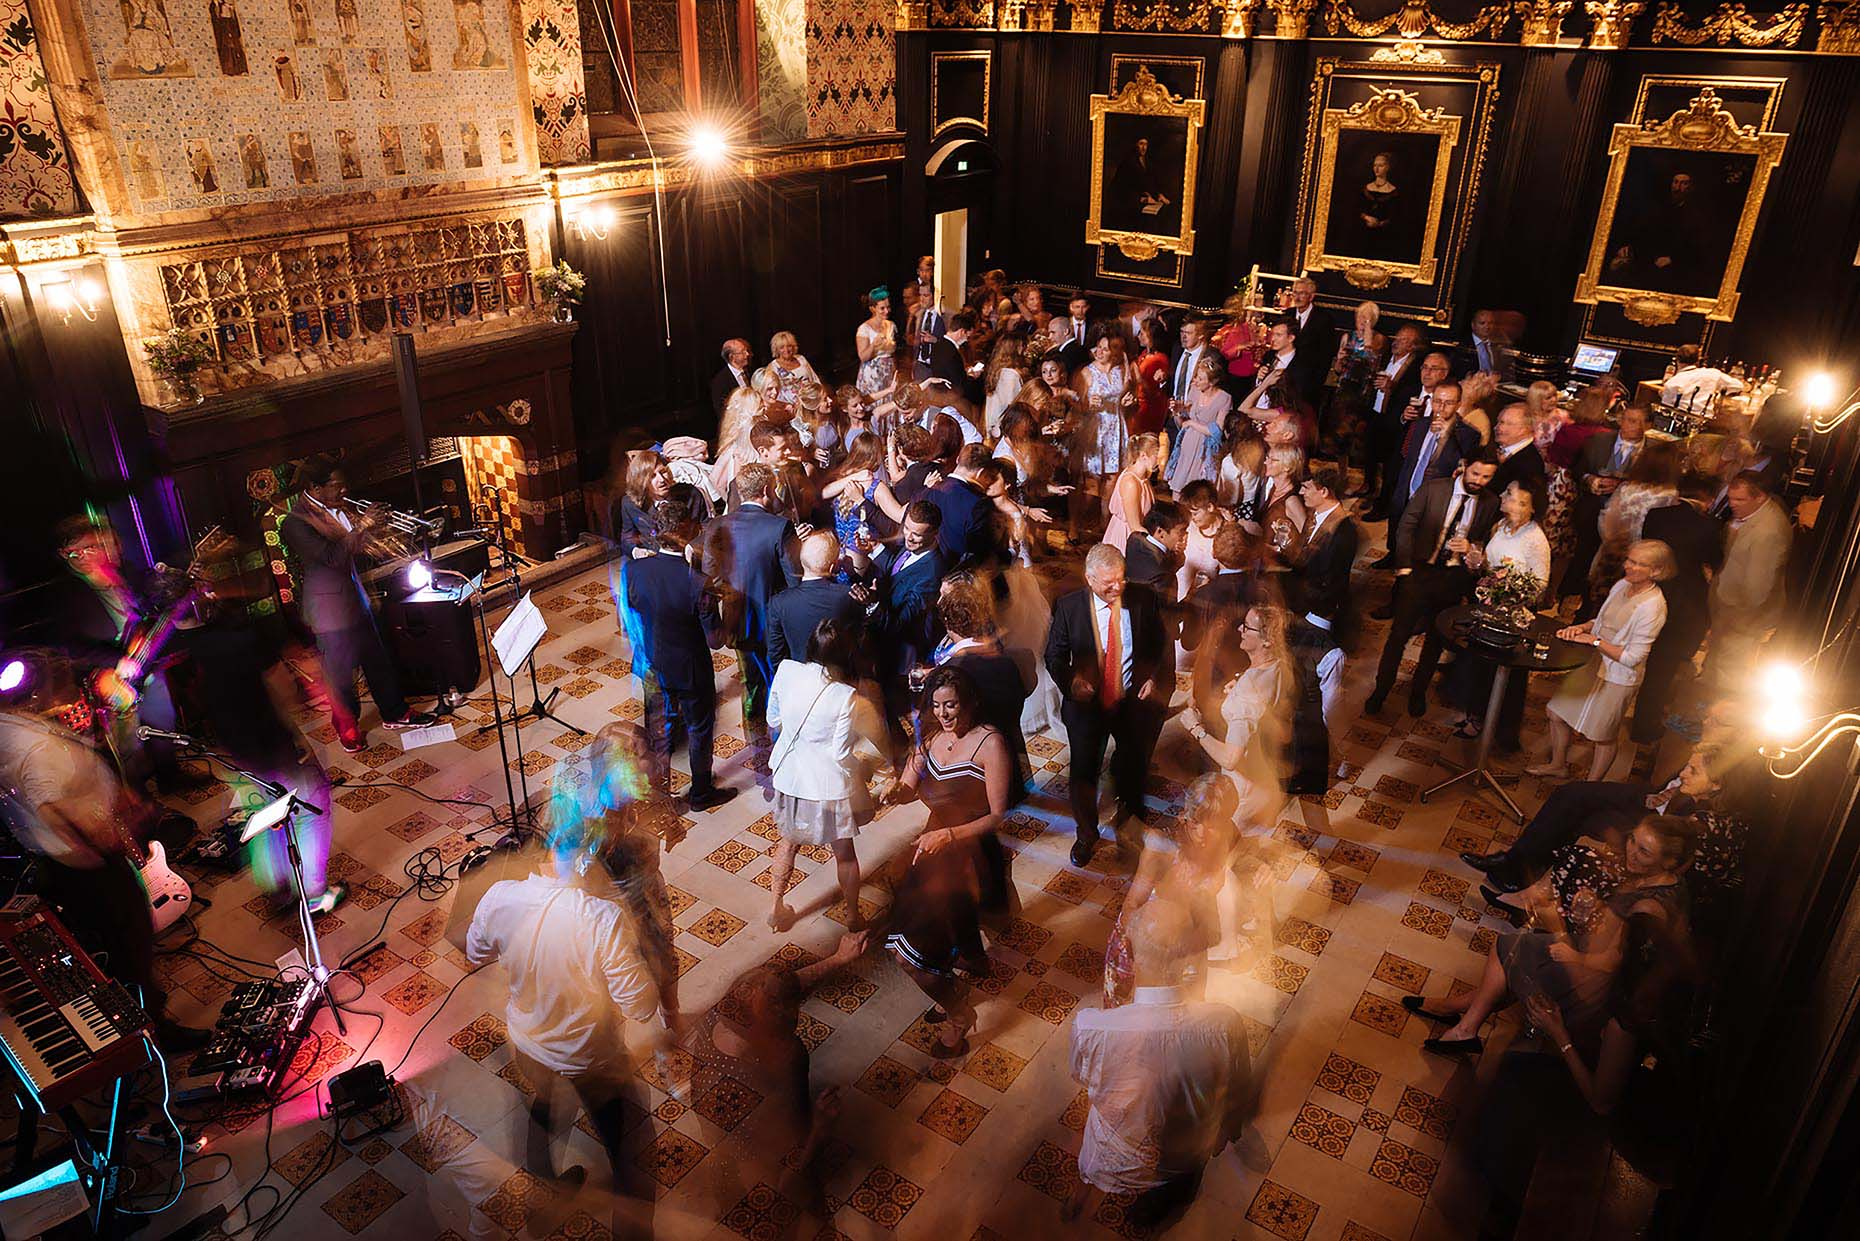 queens-college-cambridge-wedding-photographer-dancefloor-night-movement-16